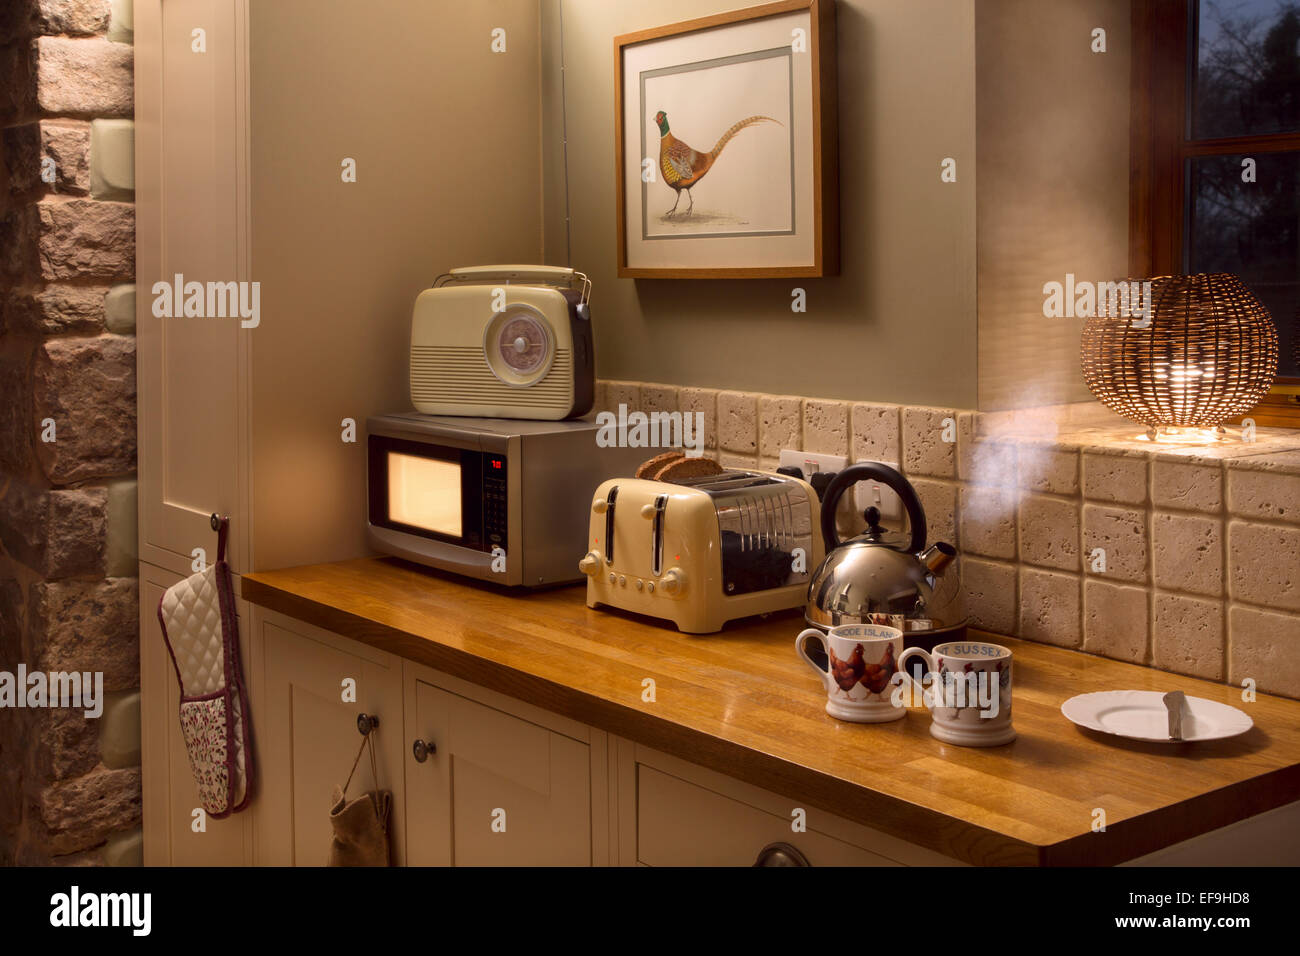 Electrical appliances in use in a kitchen. Stock Photo